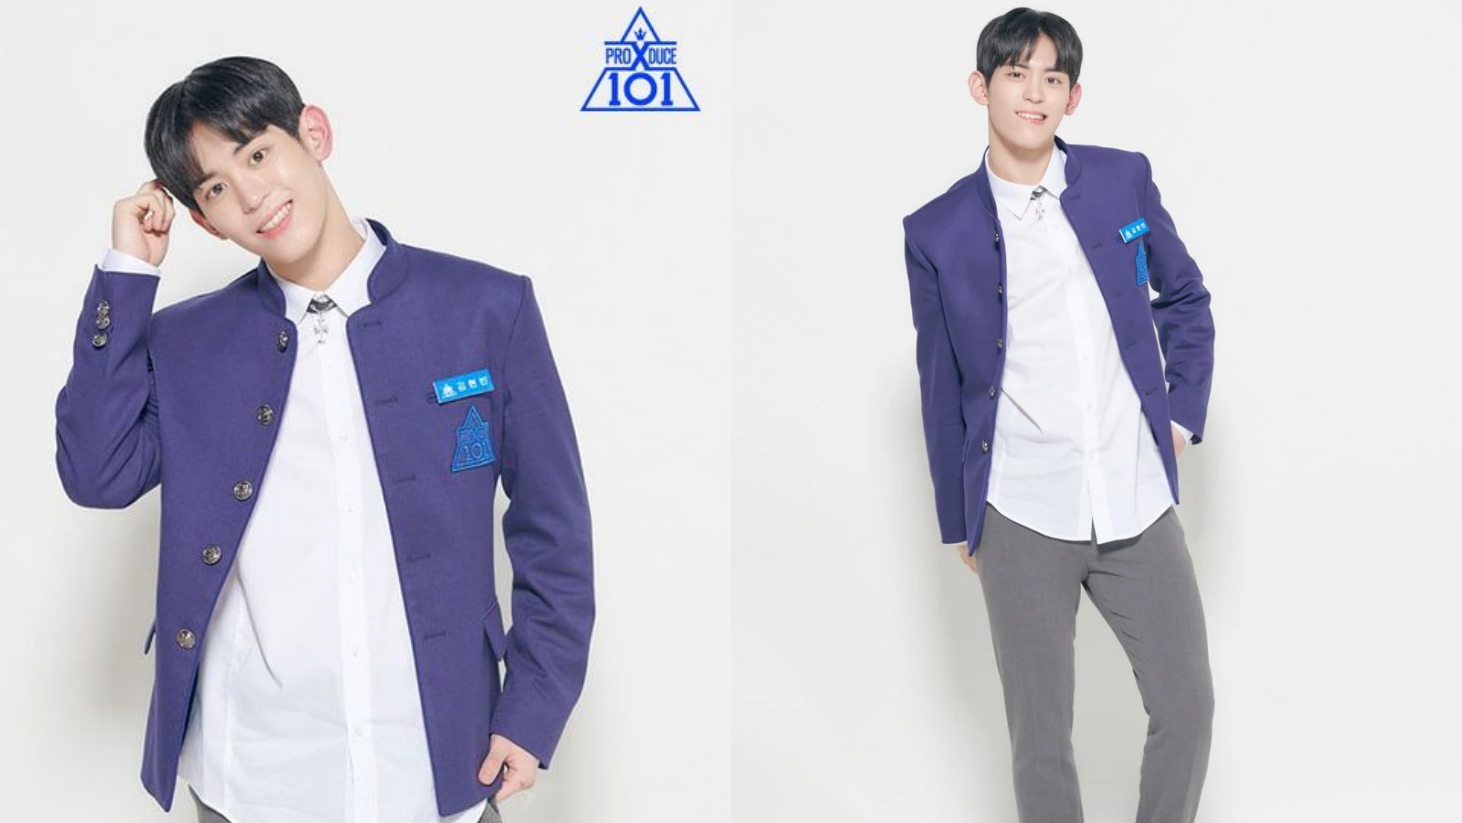 'Produce X101' Kim Hyeon Bin Joins WM Entertainment After Leaving Source Music